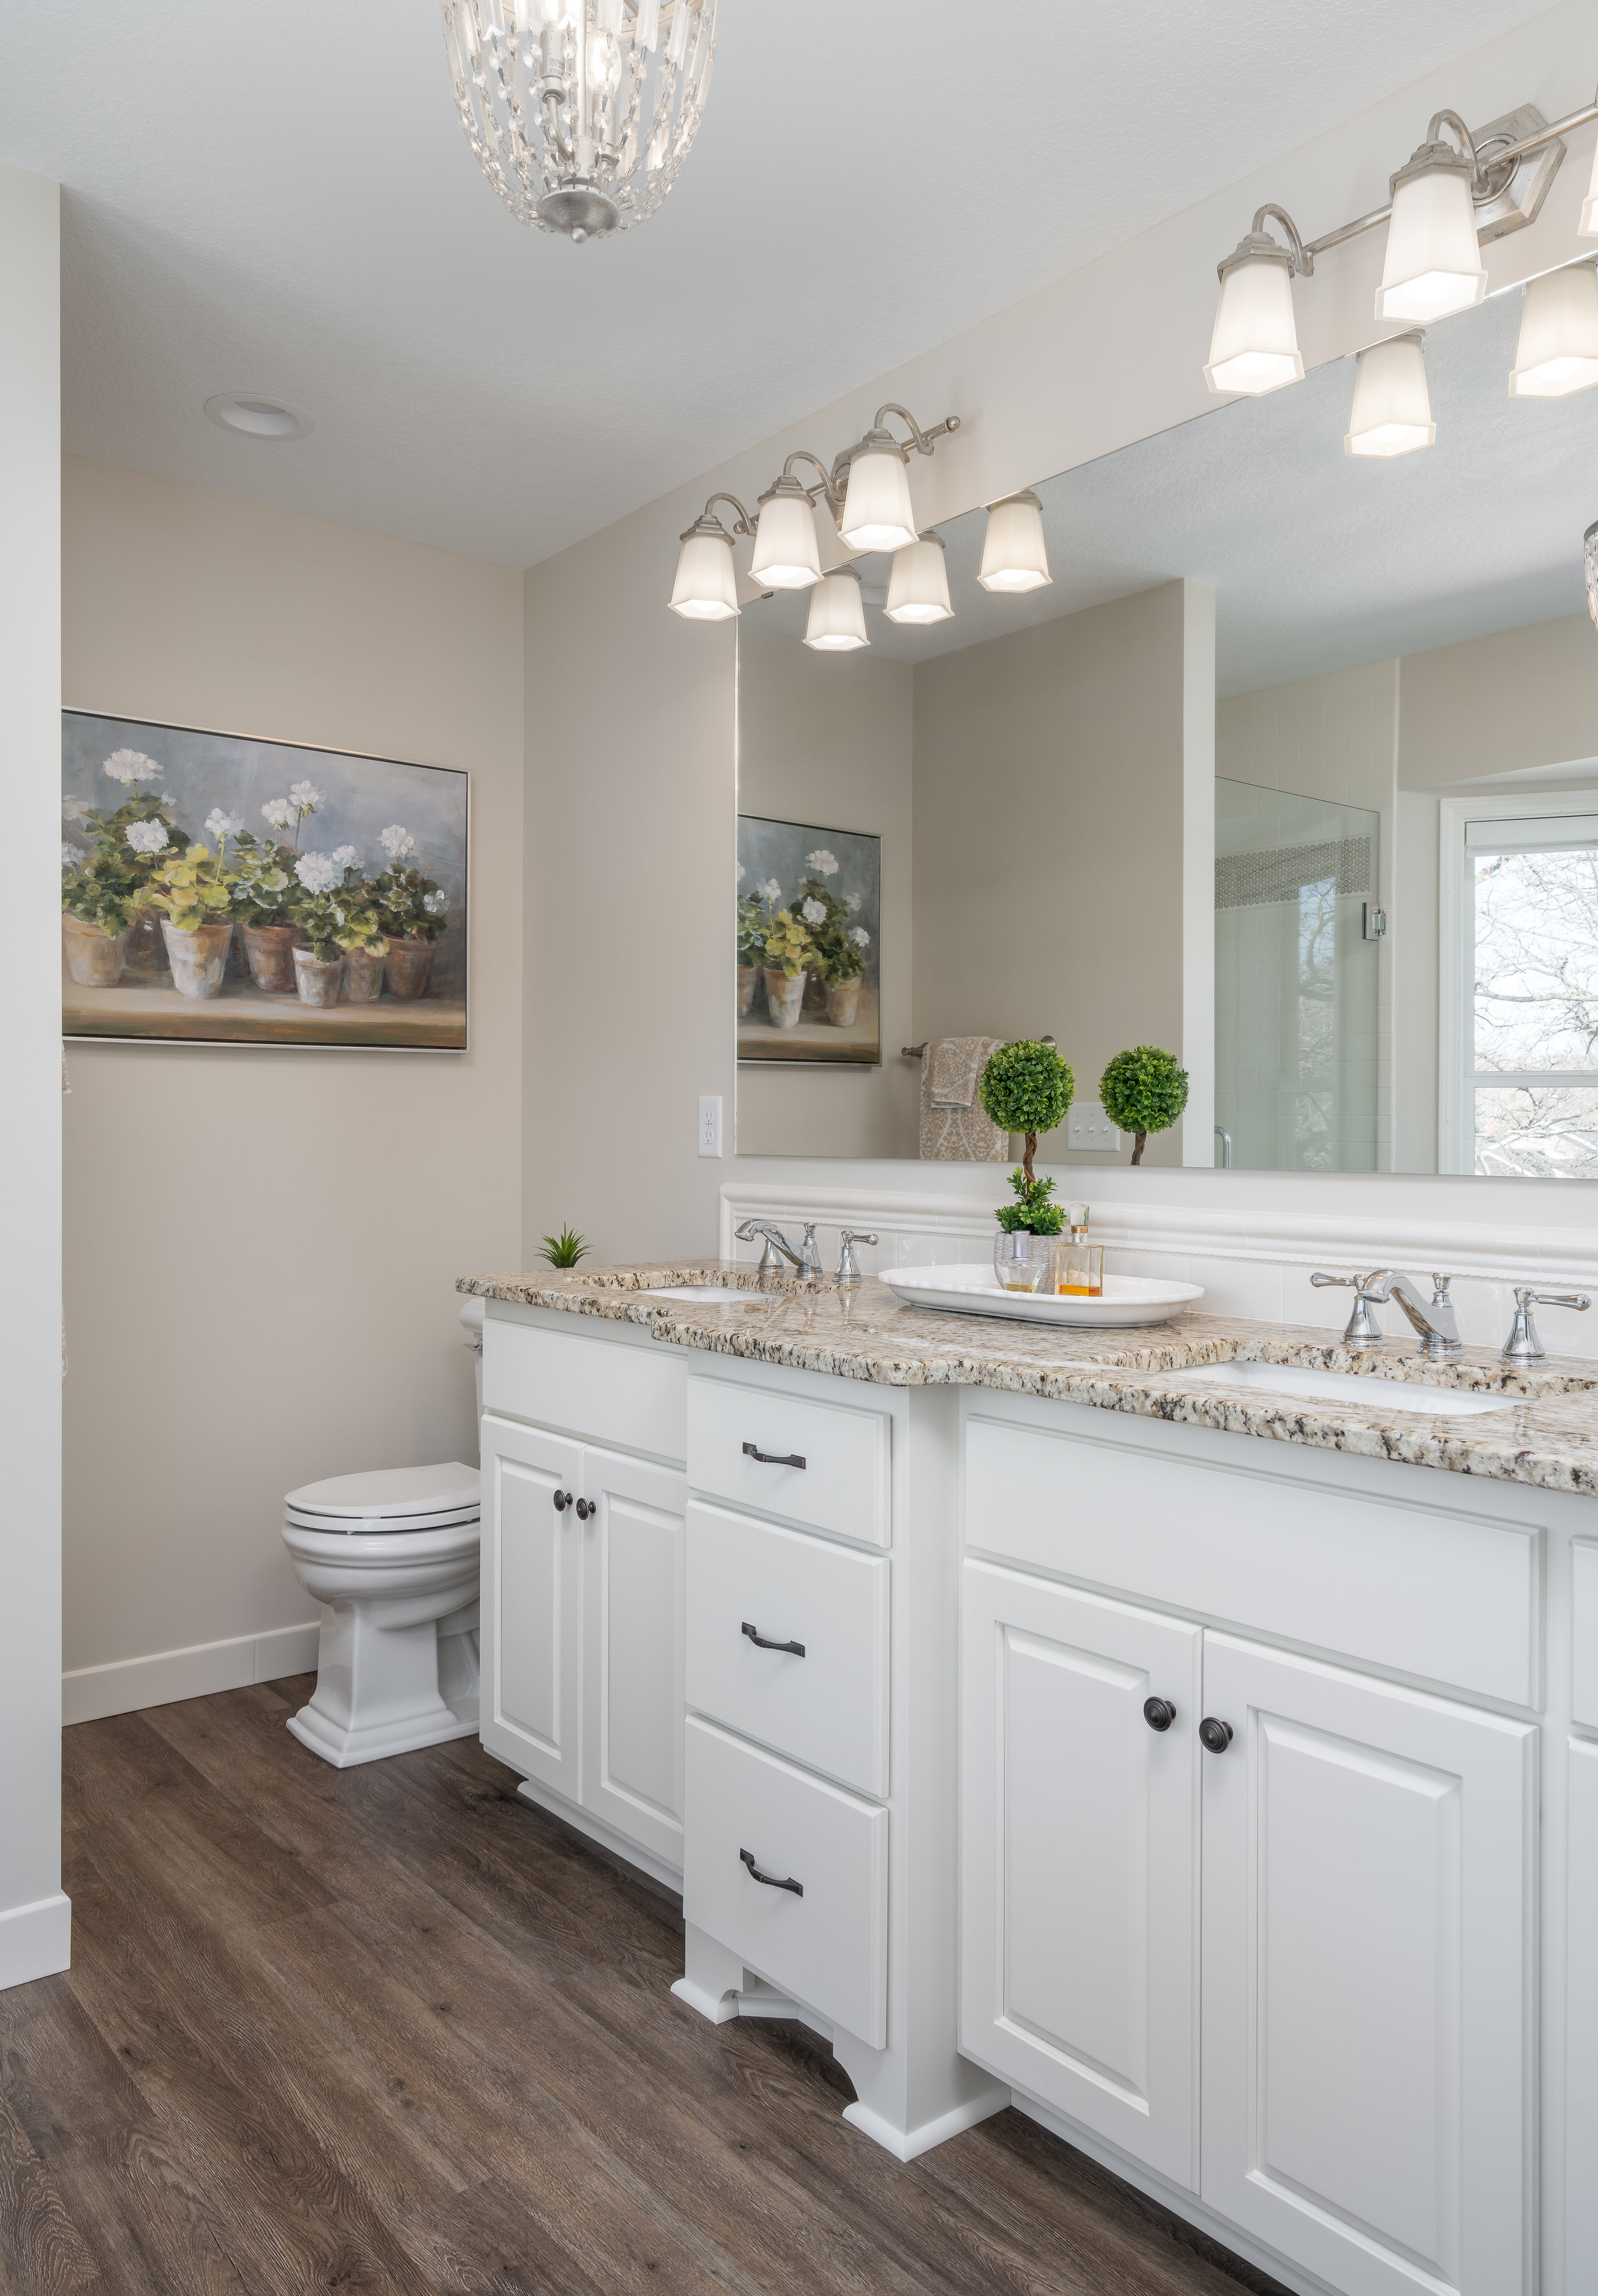 Carol_Booms_8485_Pineview_Ave_Maple_Grove-Master_From_Tub.jpg